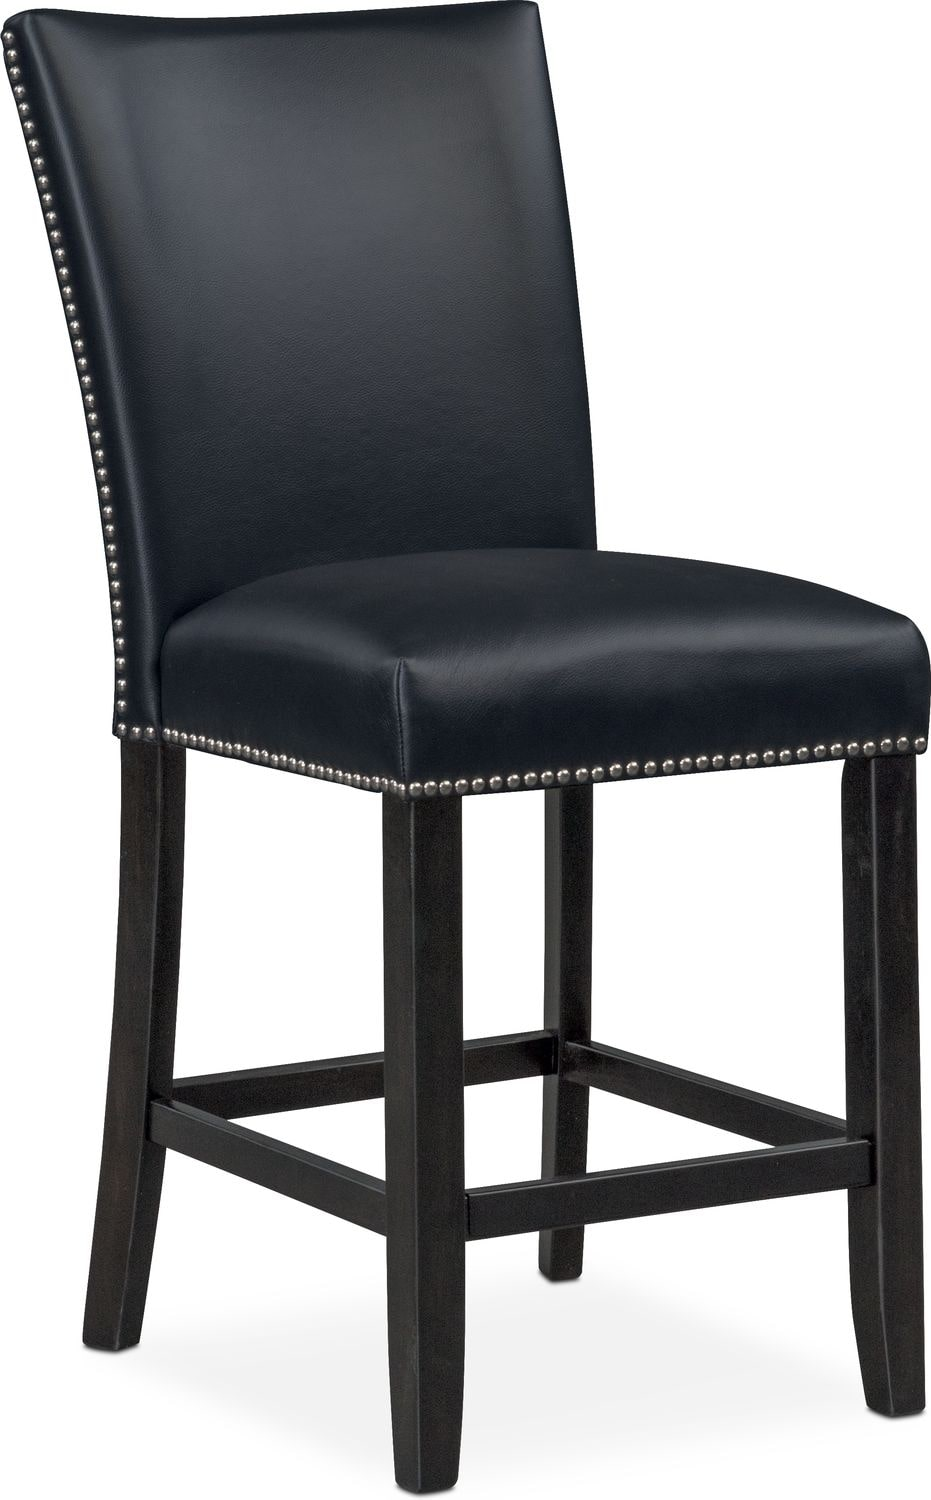 counter height chair chairman artemis upholstered stool black american